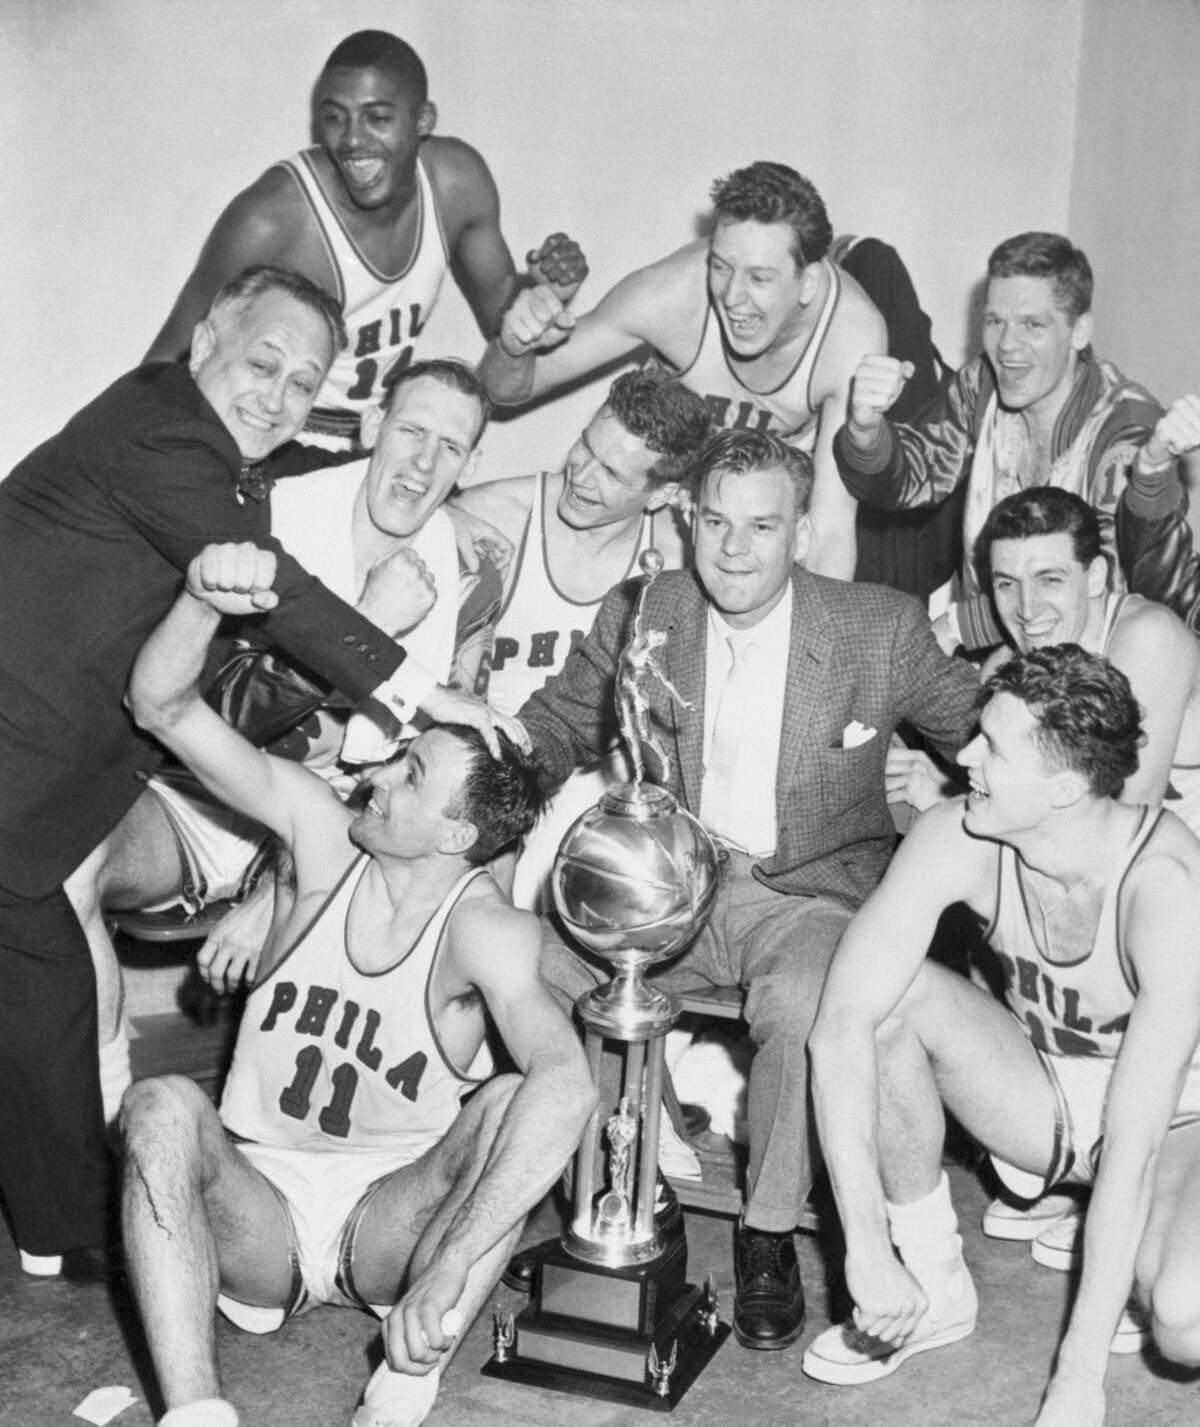 1956: The Philadelphia Warriors defeat the Detroit Pistons to win their first NBA Finals Technically, this wasn't even the franchise's first championship. The Philadelphia Warriors won the 1947 BAA (Basketball Association of America) Finals two years before the BAA merged with the NBL (National Basketball League) to form the NBA. Still, the 1956 team led by Hall of Fame inductee Joe Fulks was the first Warriors team to win the NBA Finals.